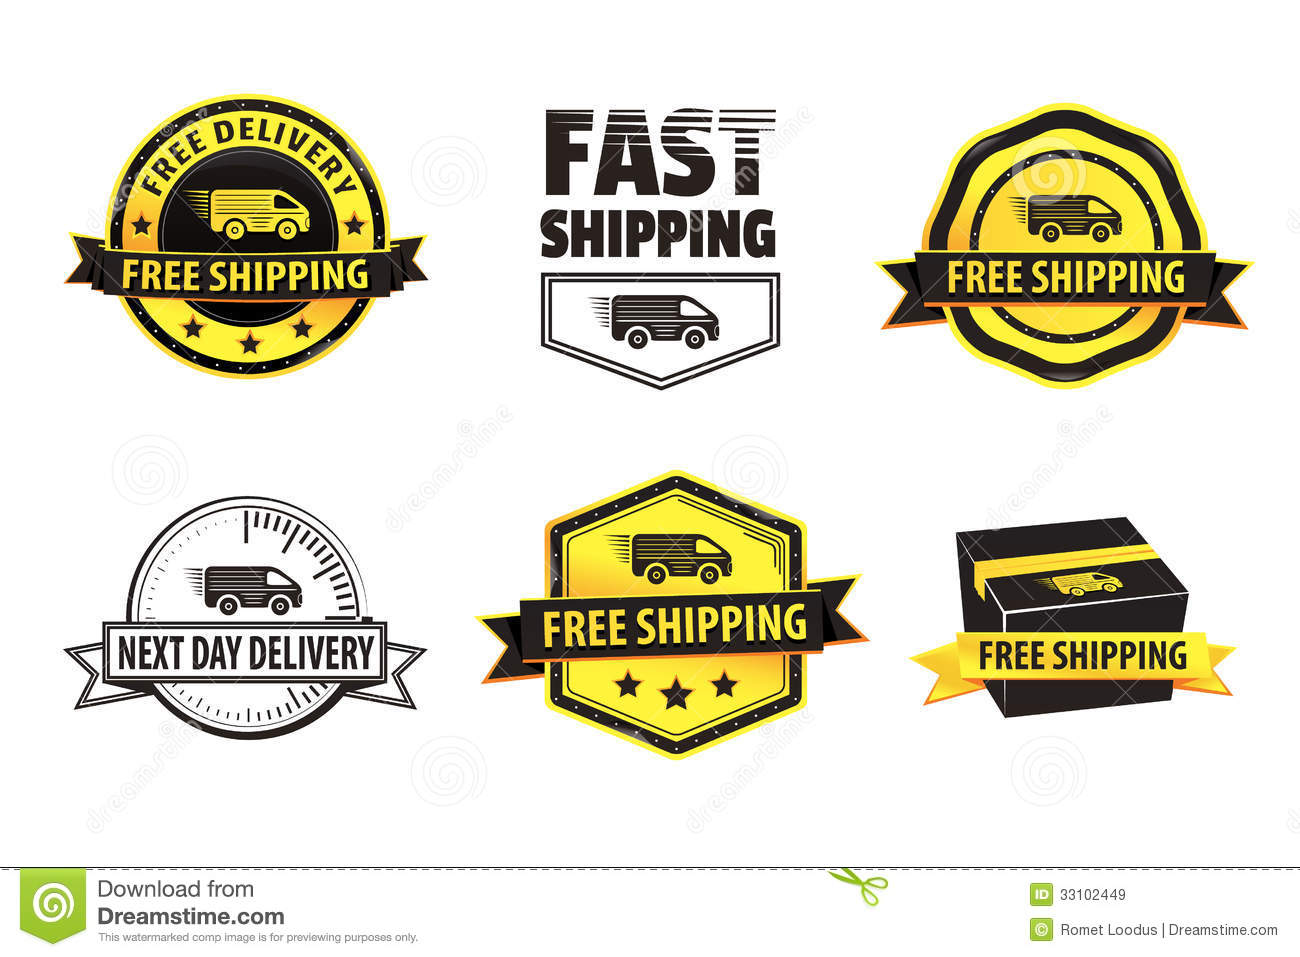 yellow free shipping badges stock vector illustration 33102449. Black Bedroom Furniture Sets. Home Design Ideas